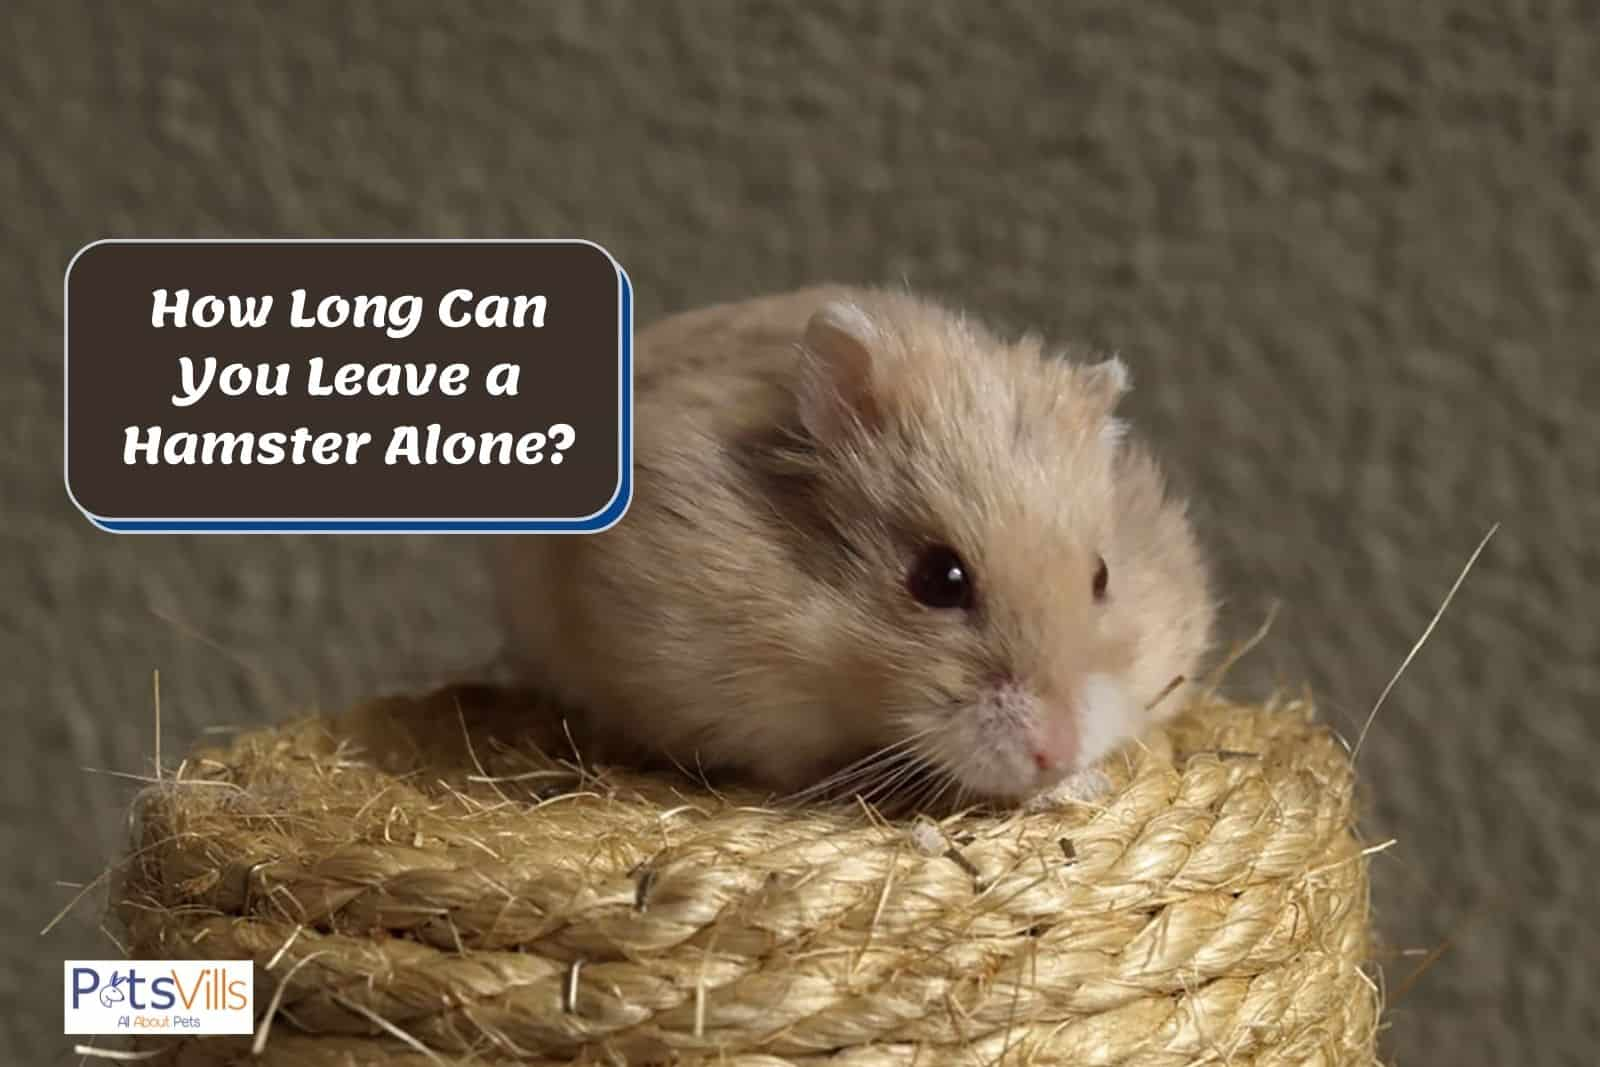 a hamster alone at home